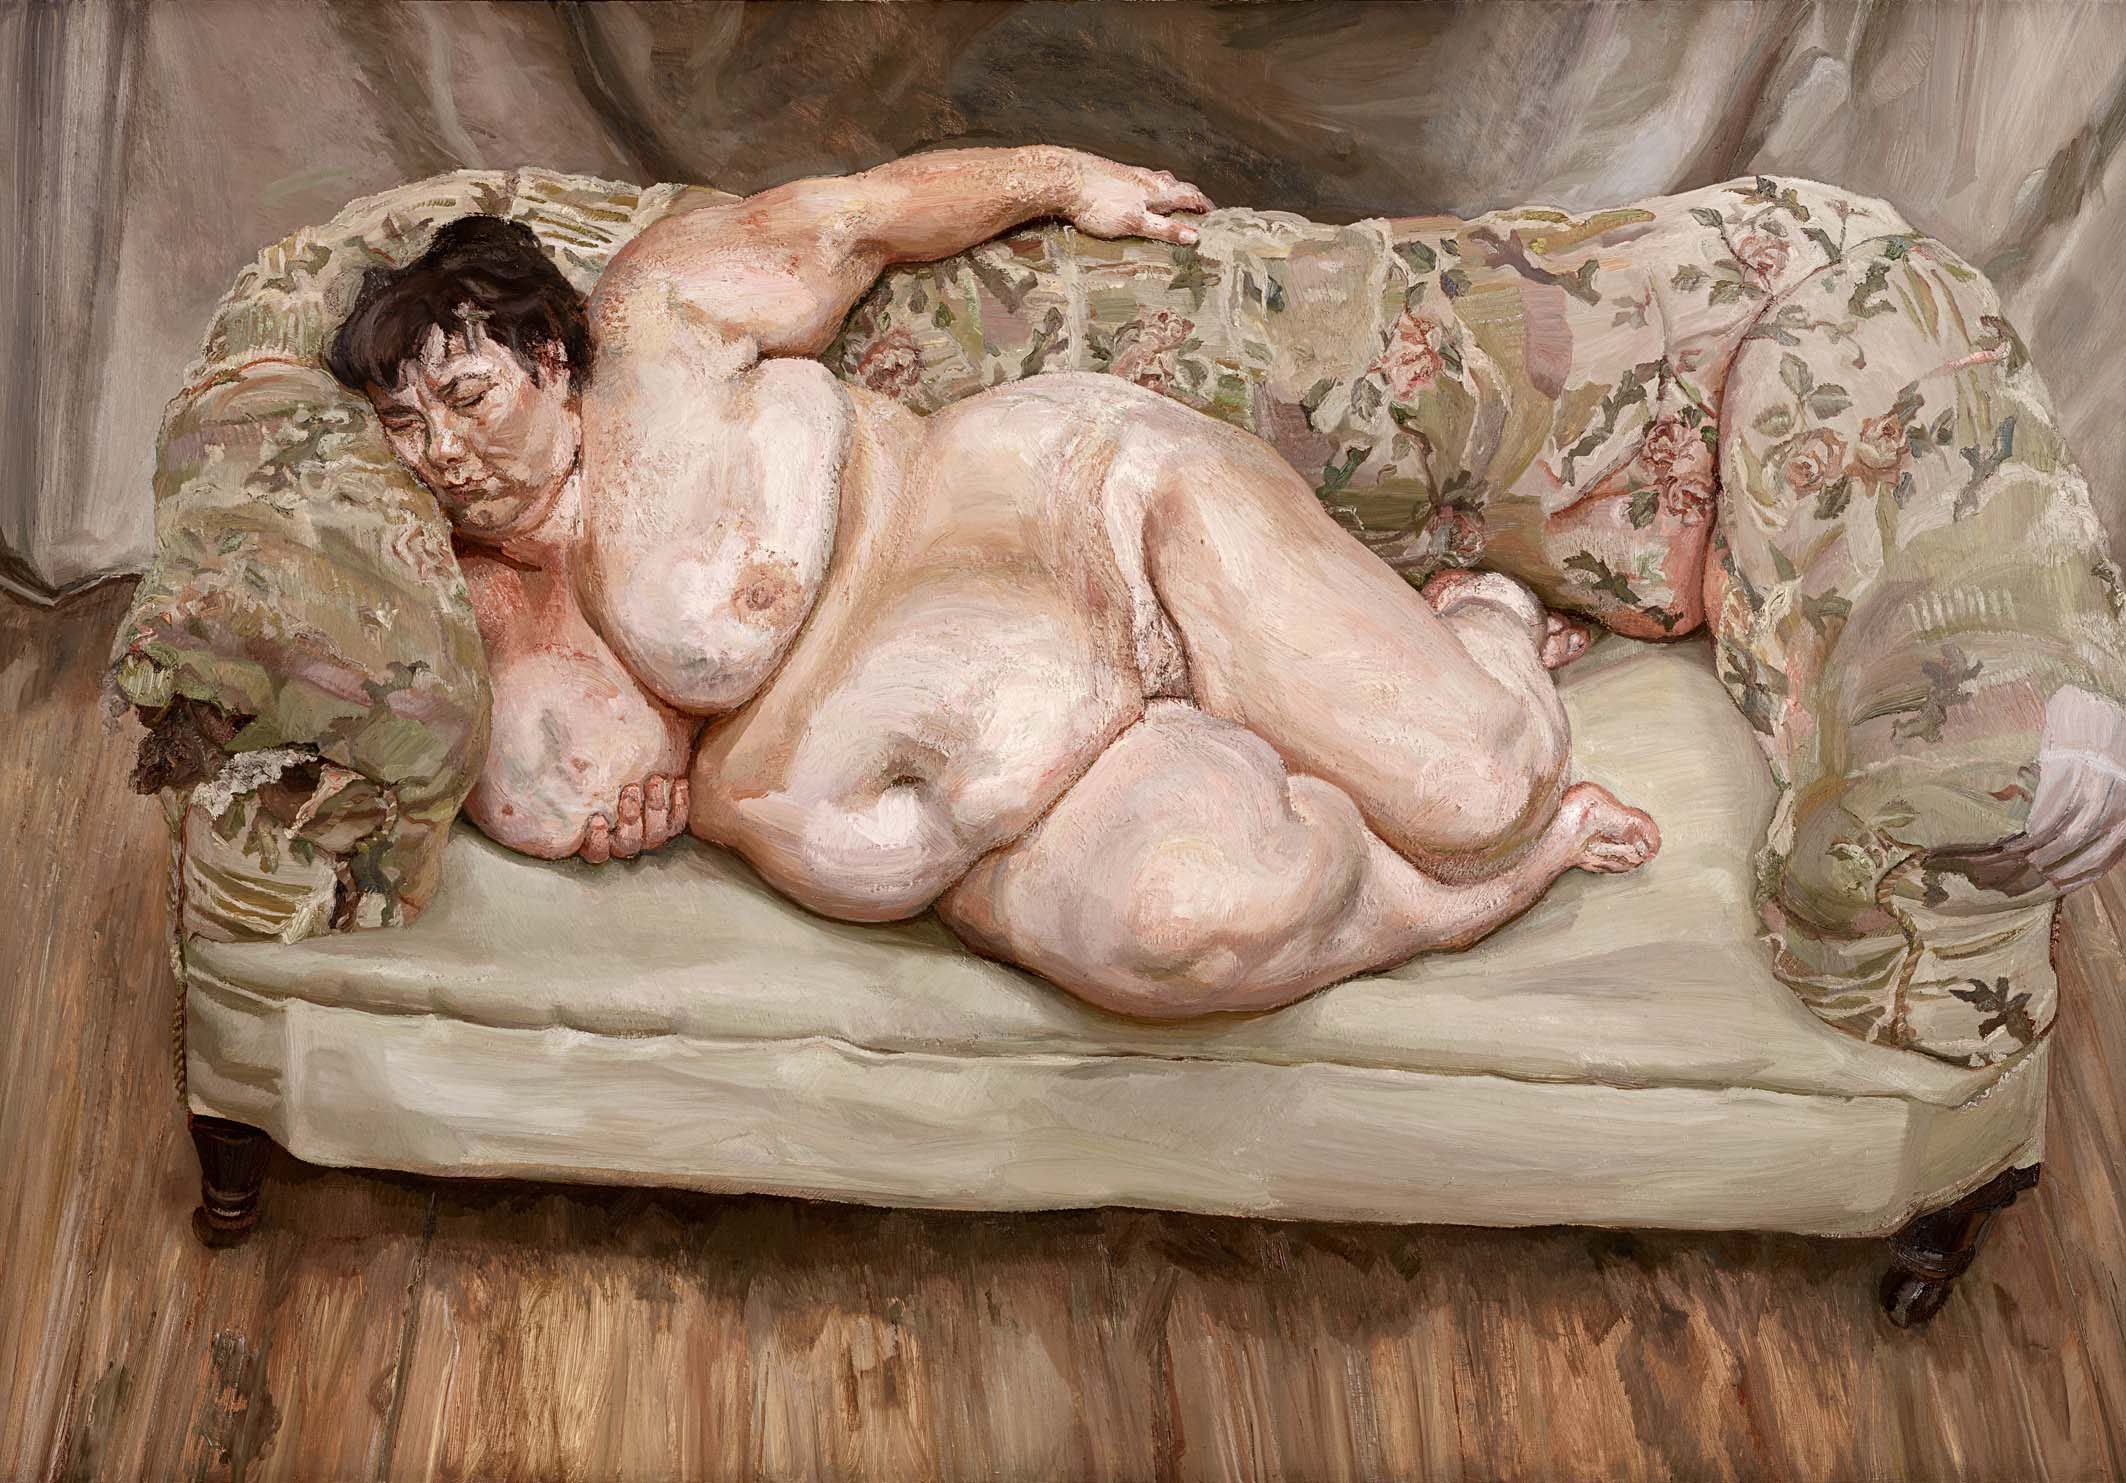 Lucian freud naked portrait are not